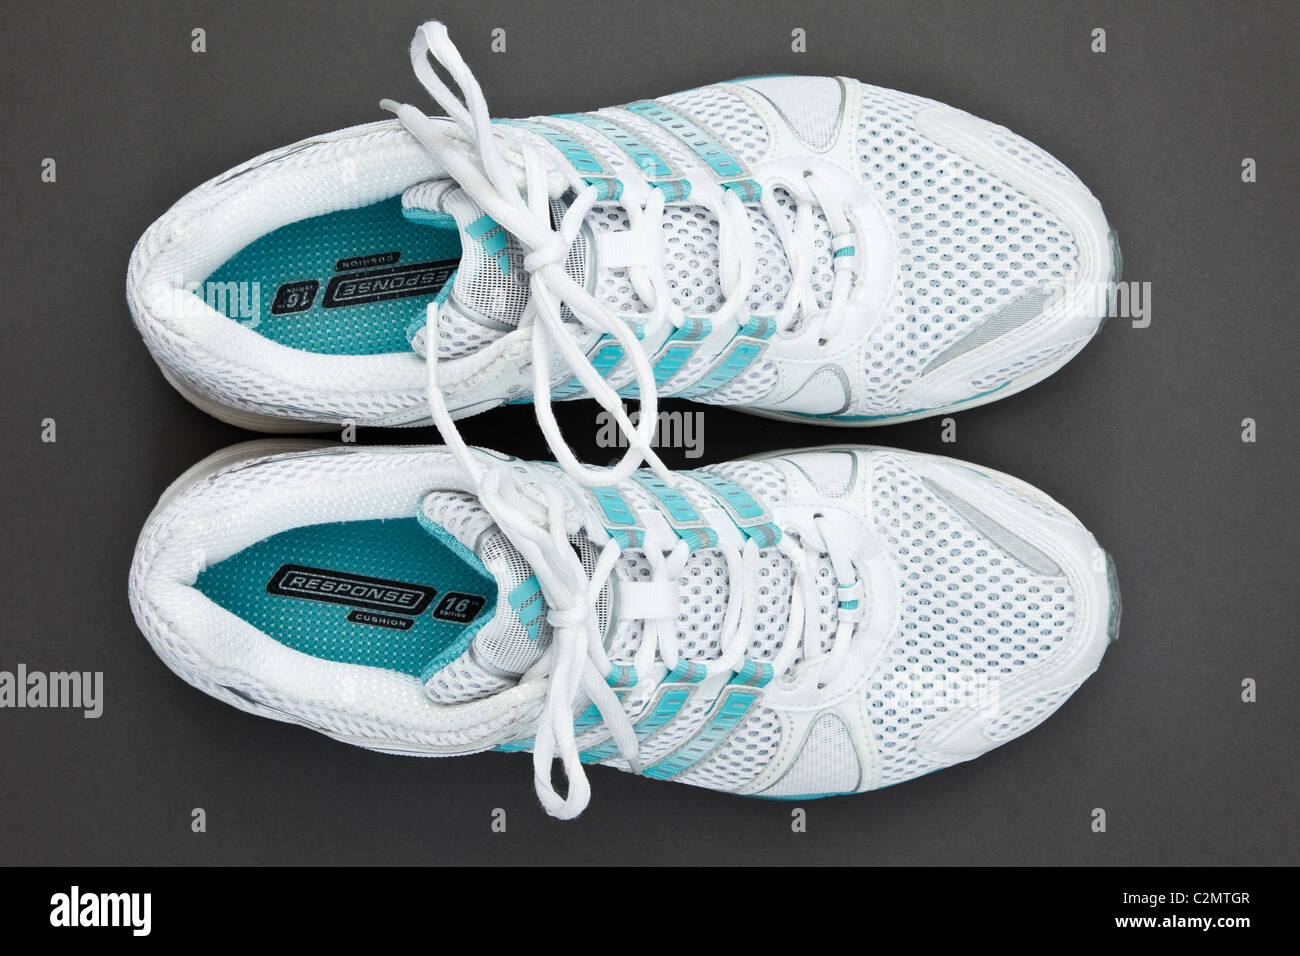 A pair of women's new white and blue Adidas air cushion trainers ...